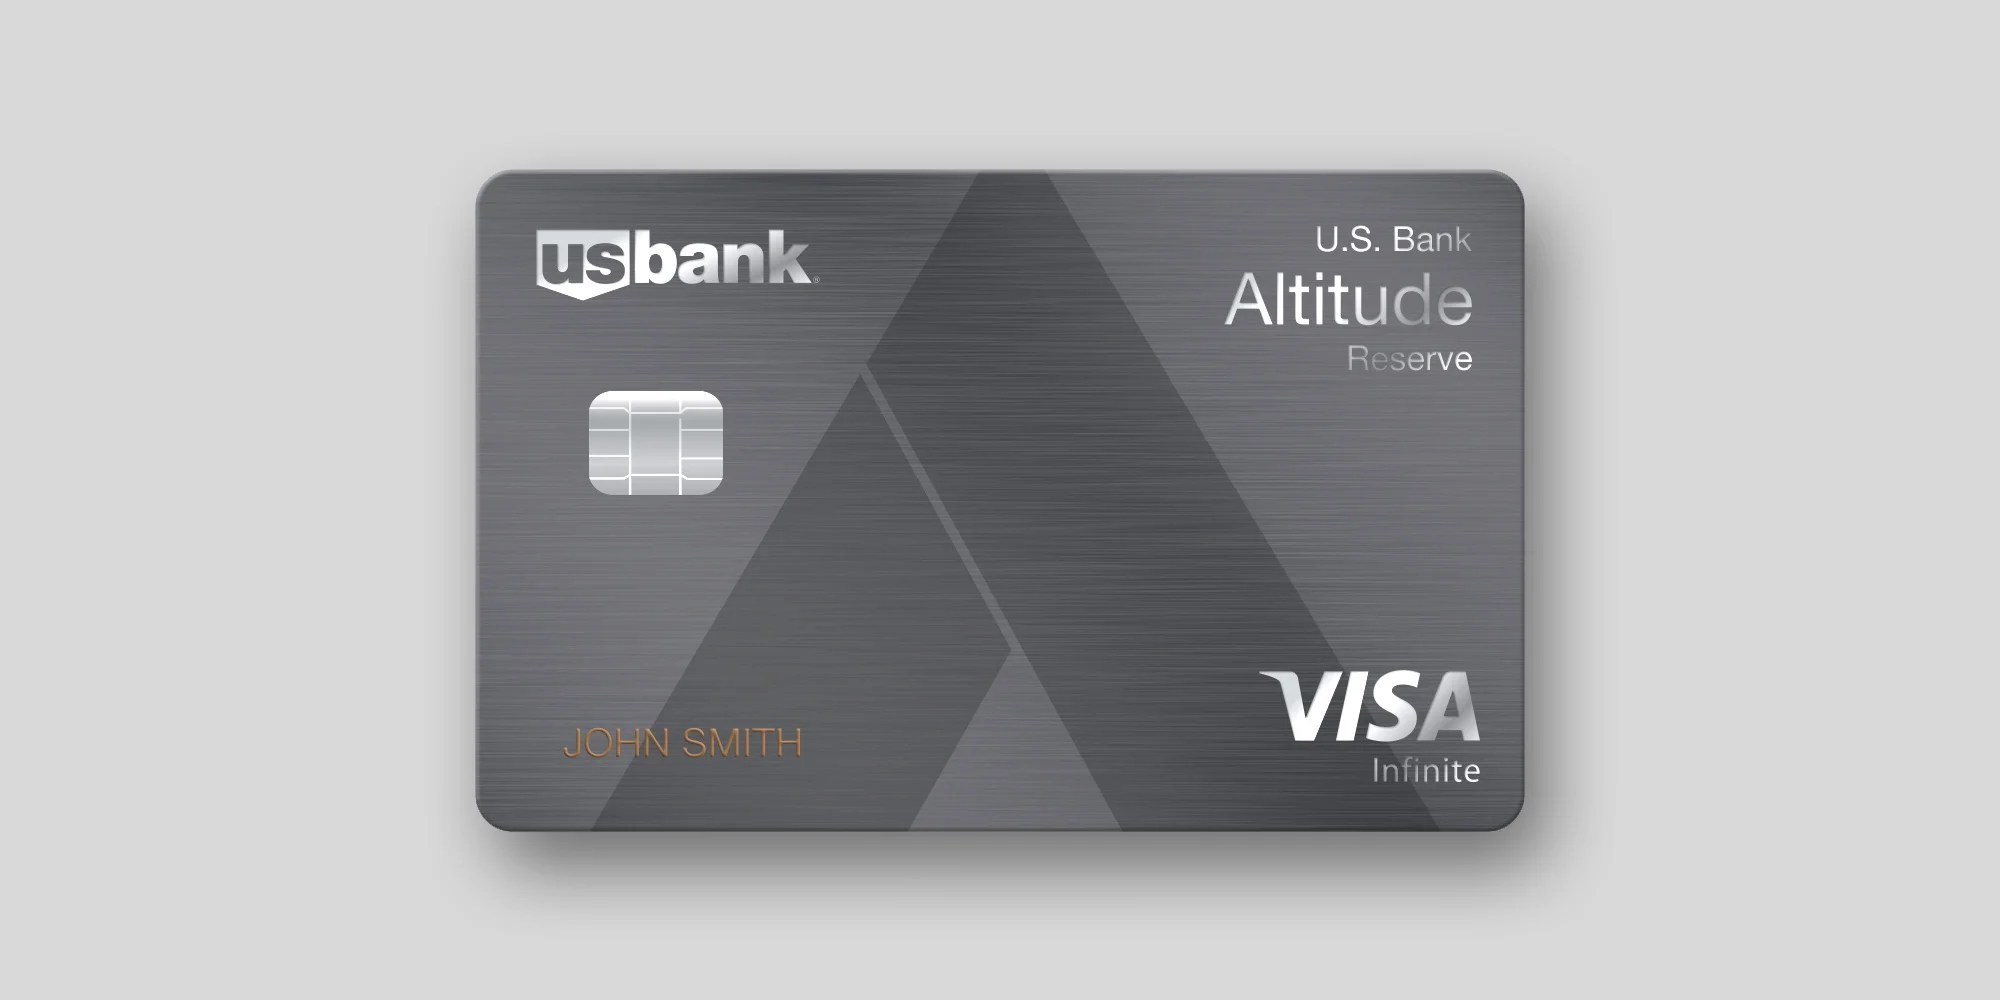 Questions and Answers: U.S. Bank Altitude Reserve Card